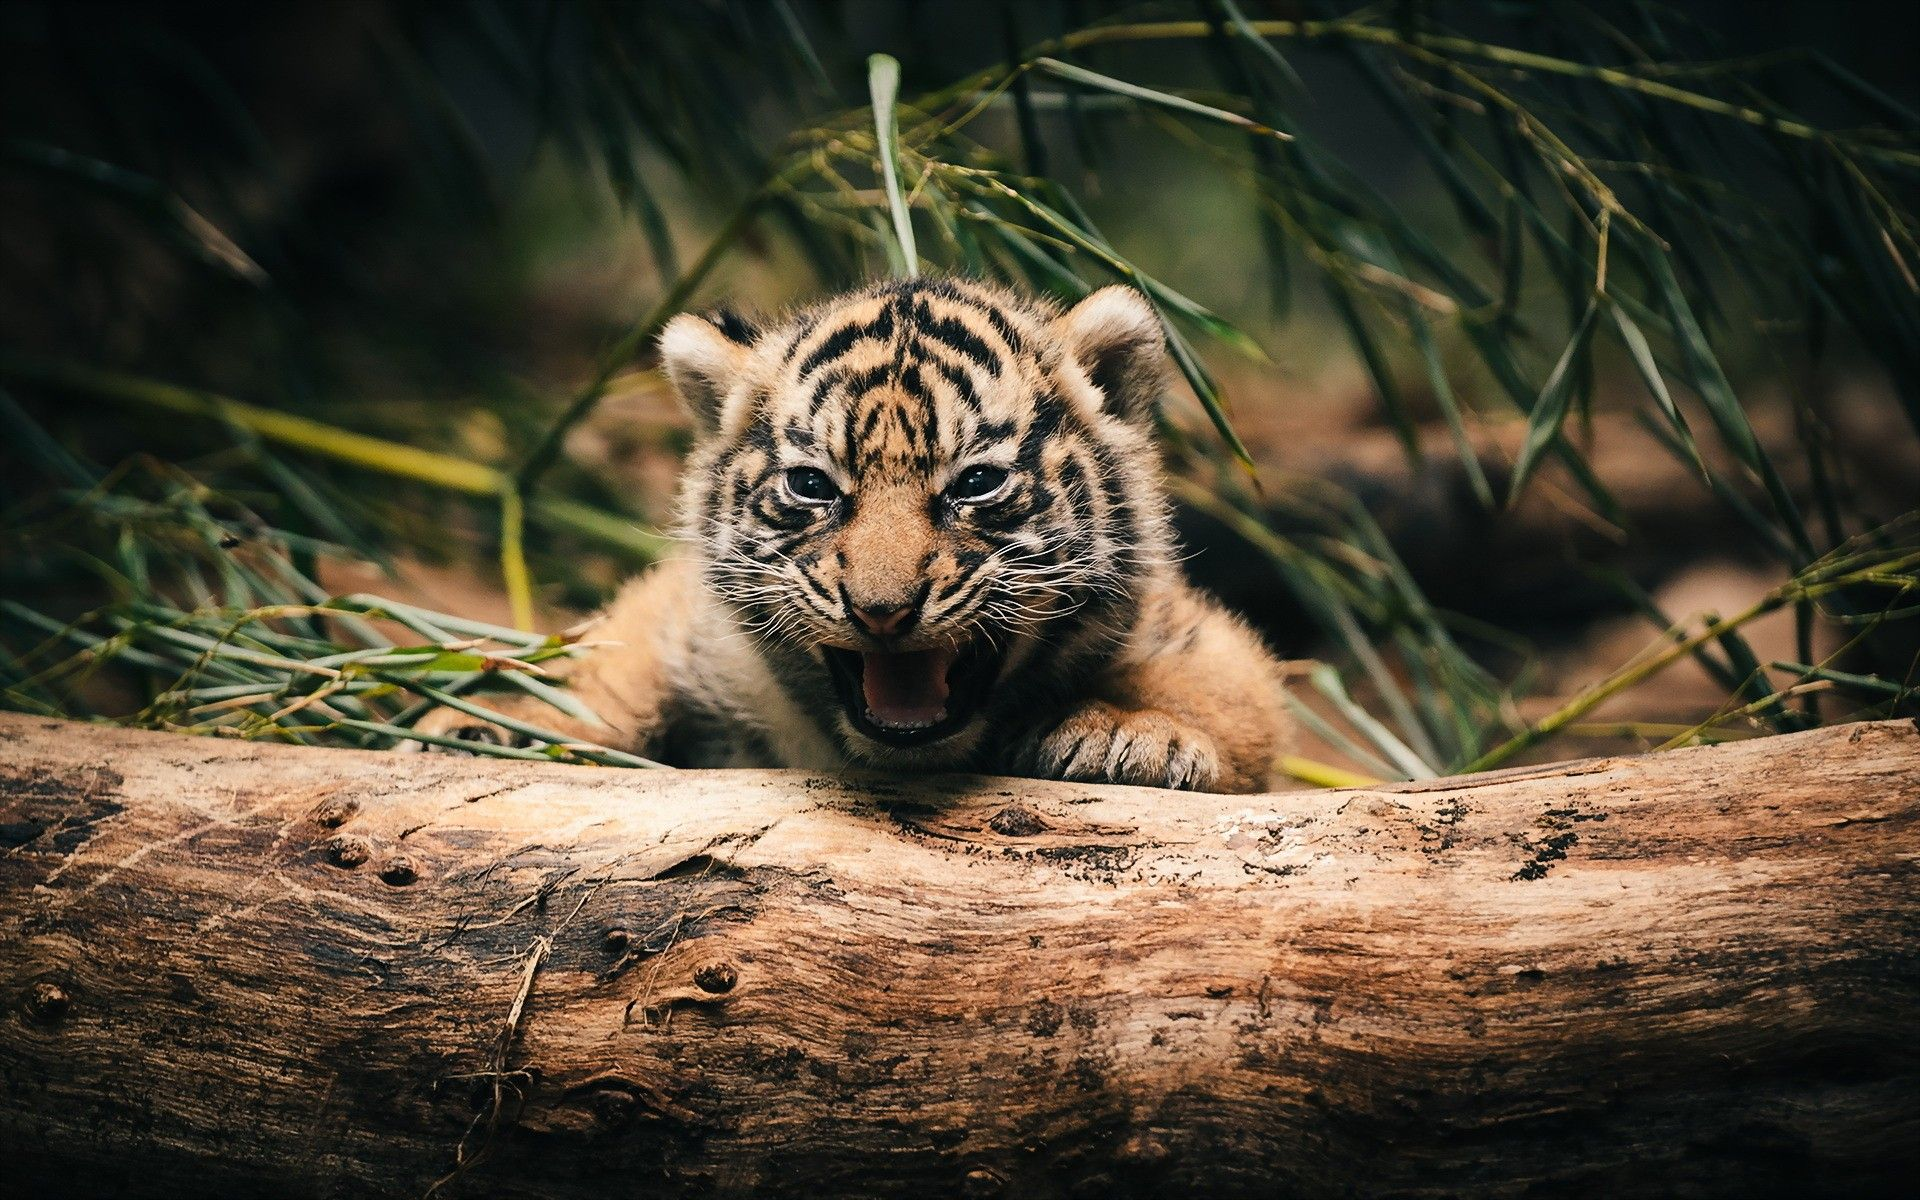 Animals Tigers Cubs Baby Animals Wallpaper 2785246 Wallbase Cc Baby Tiger Tiger Pictures Animal Wallpaper